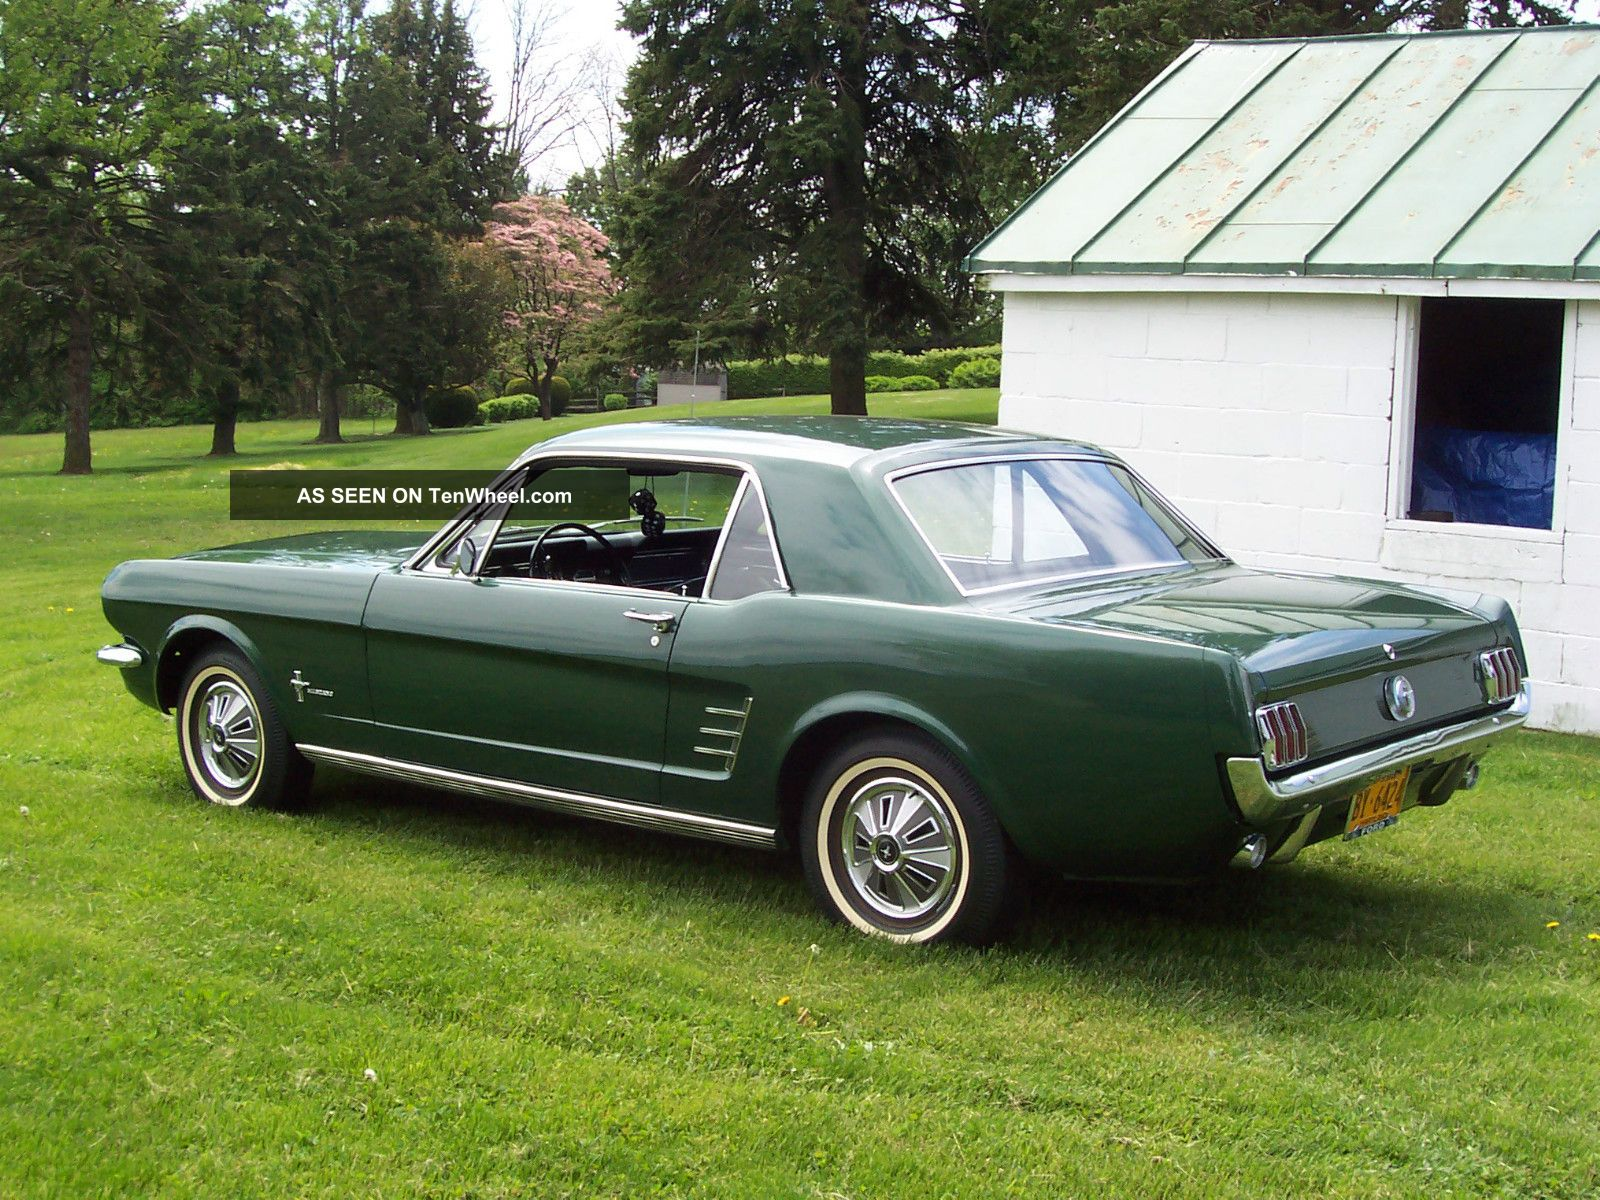 1966 Mustang Coupe Time Capsule